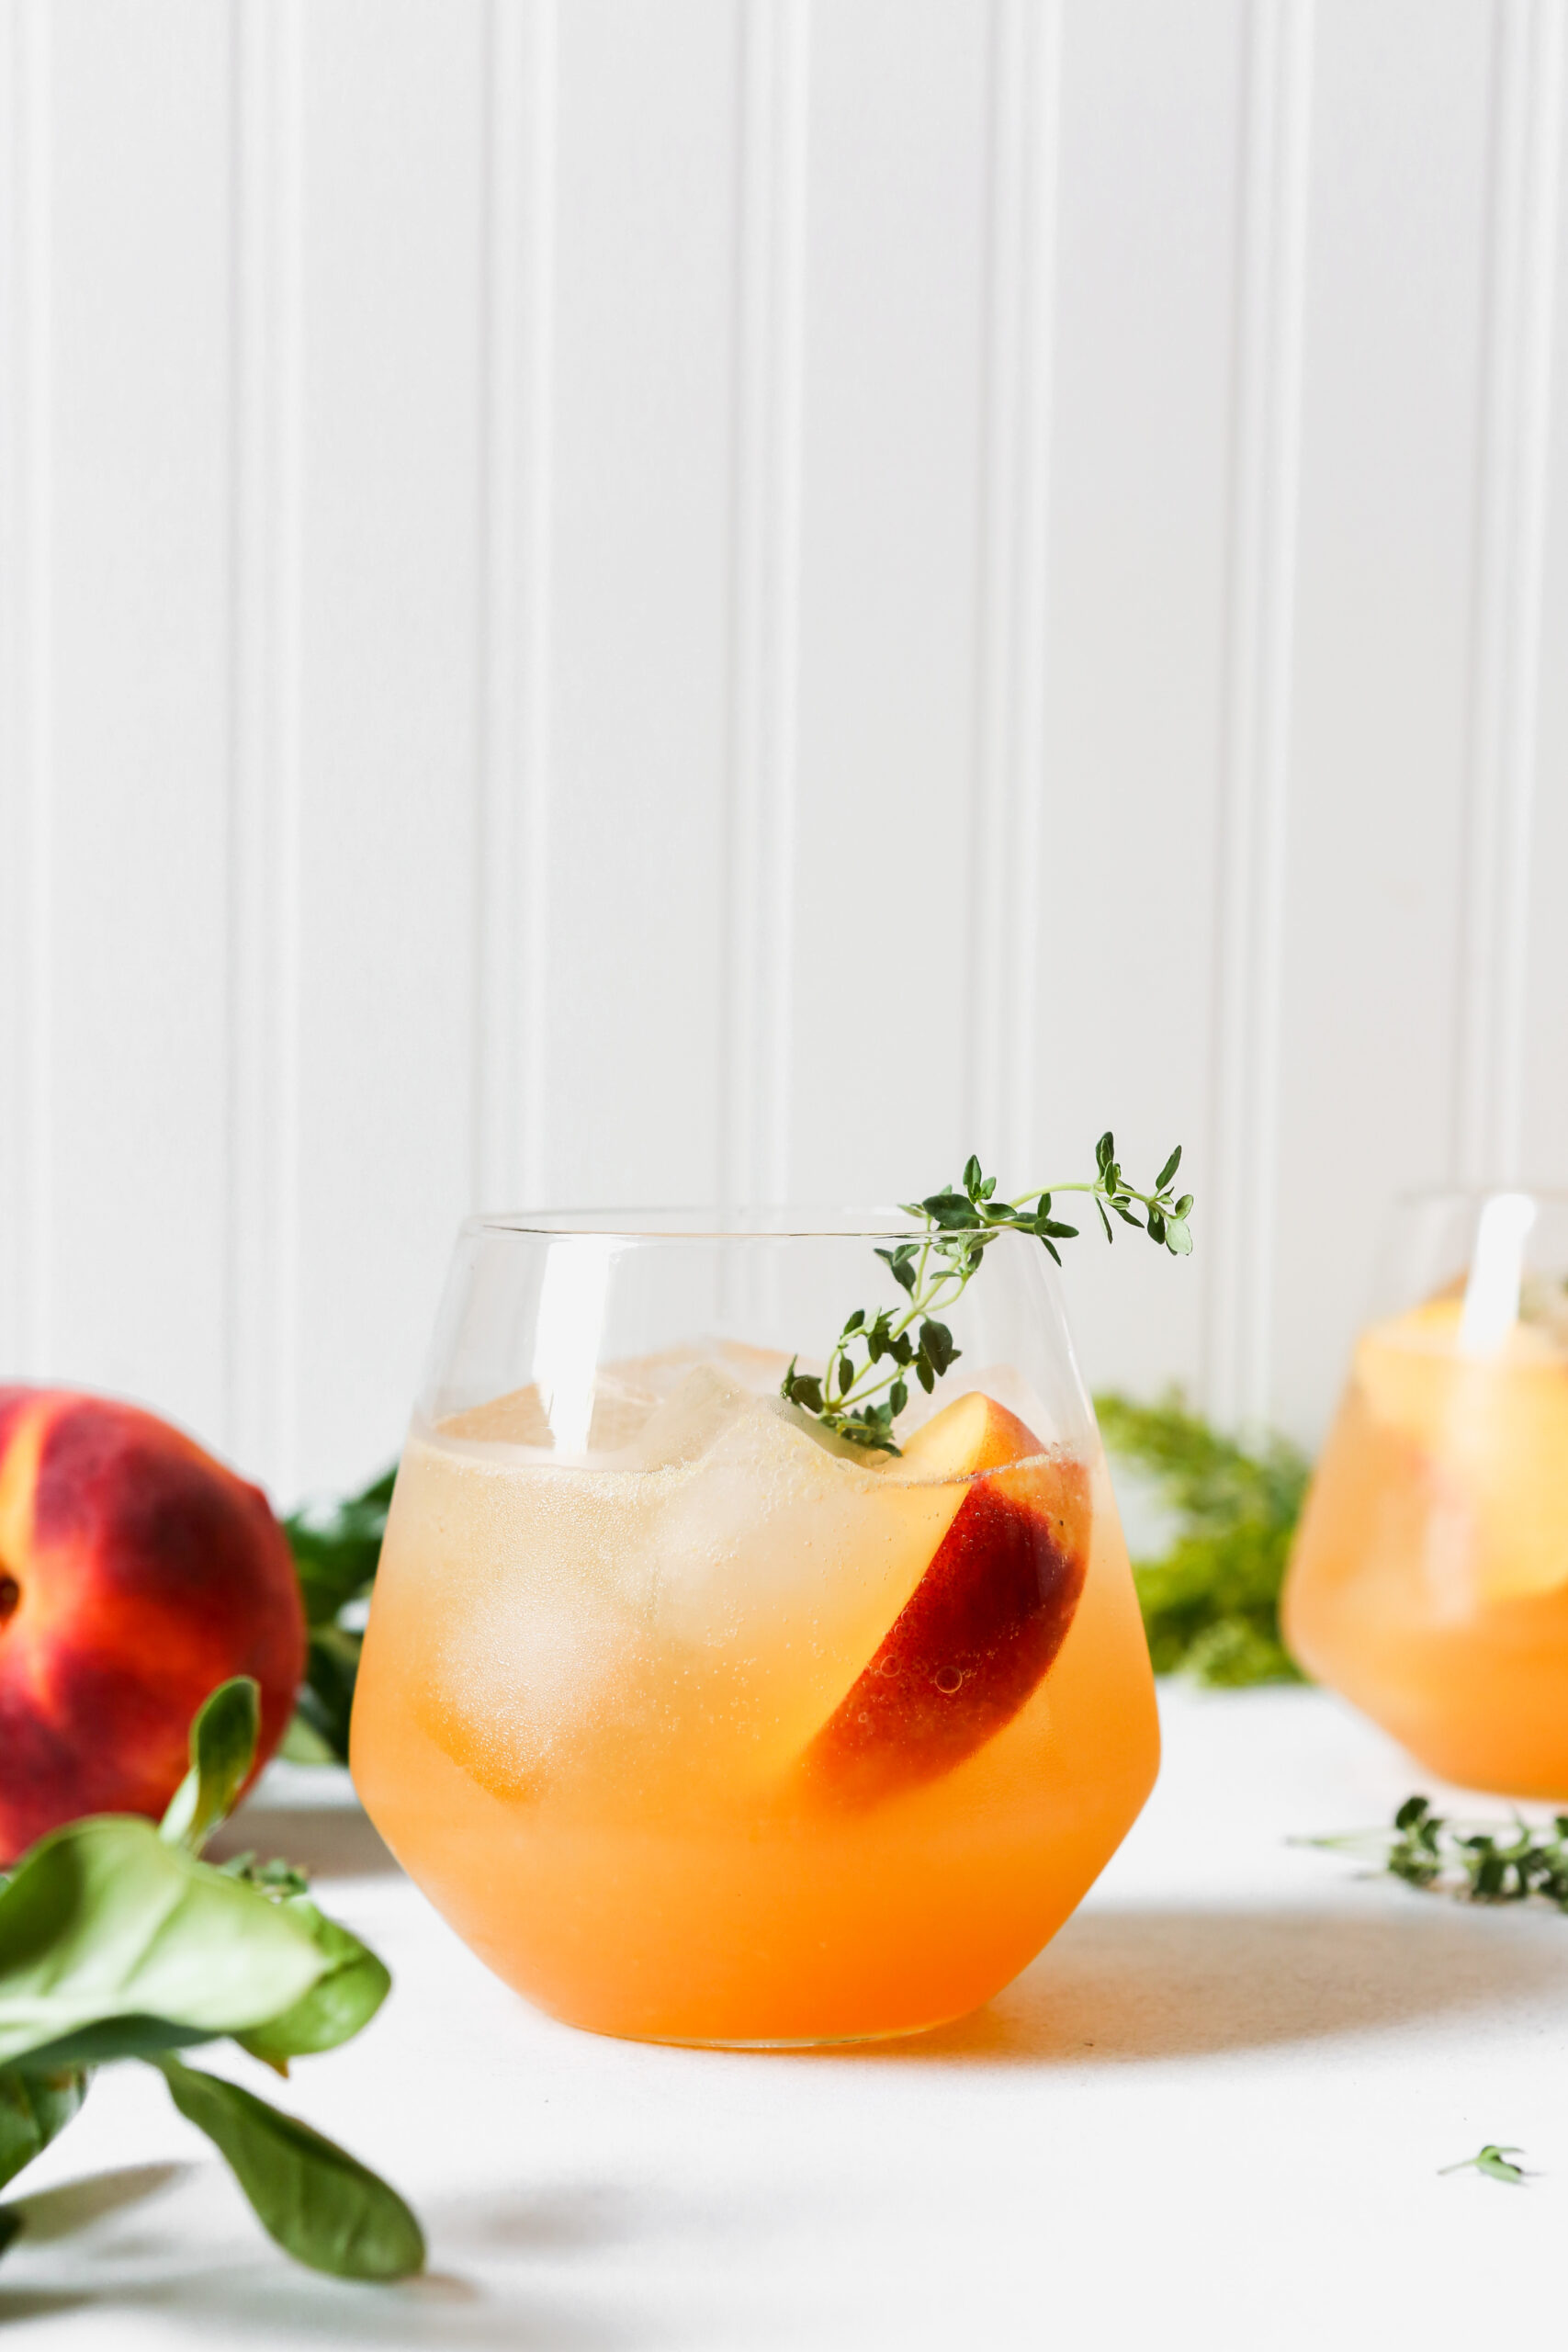 Peach and thyme cocktails set on a marble surface